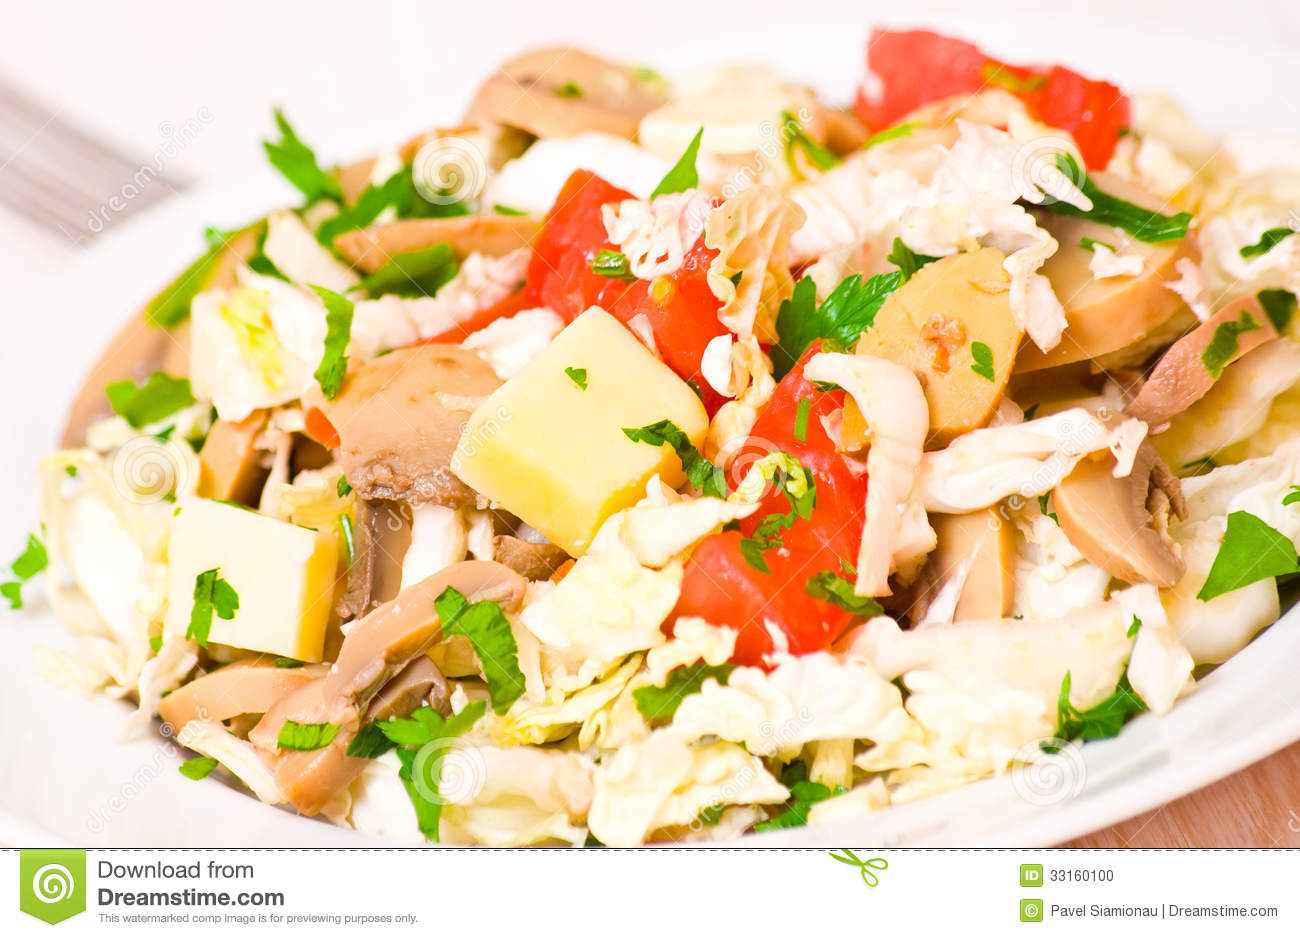 Stock Photo: Salad with chicken, mushrooms, cheese and vegetables